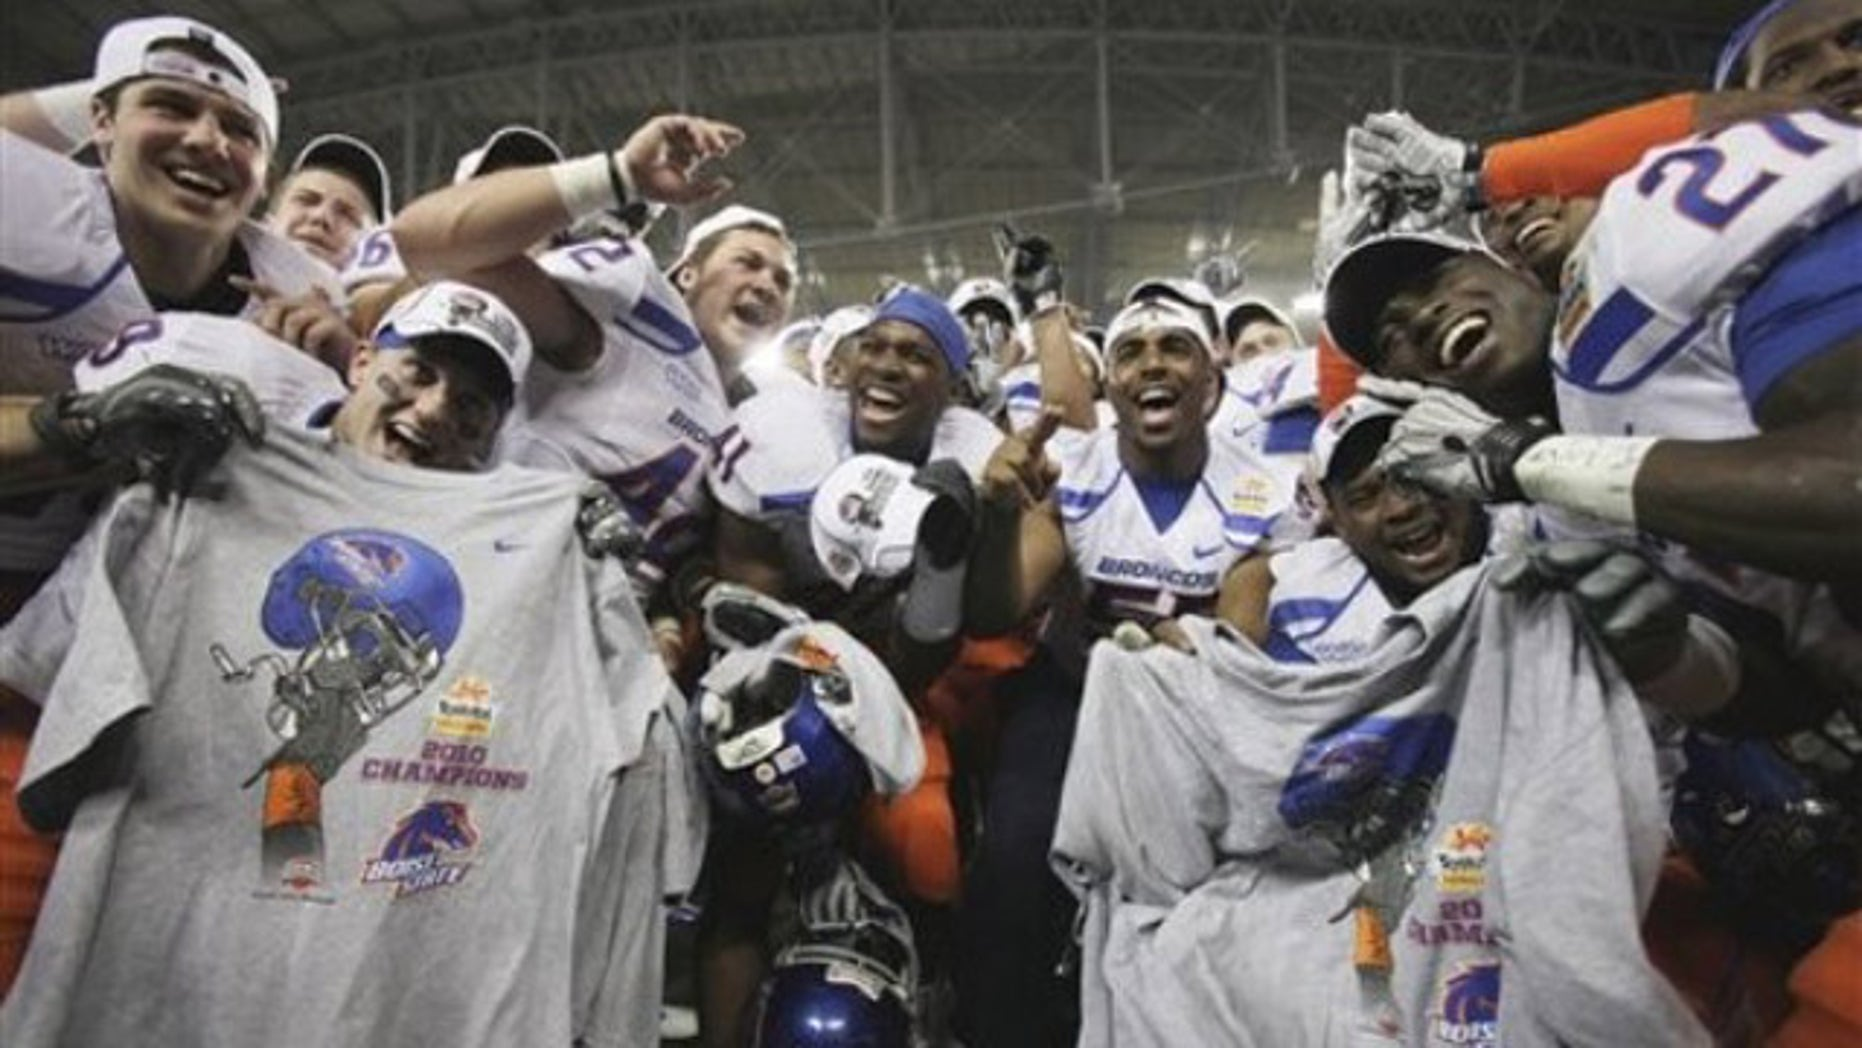 Boise State players celebrate their victory over TCU after the Fiesta Bowl NCAA college football game Monday, Jan. 4, 2010, in Glendale, Ariz.